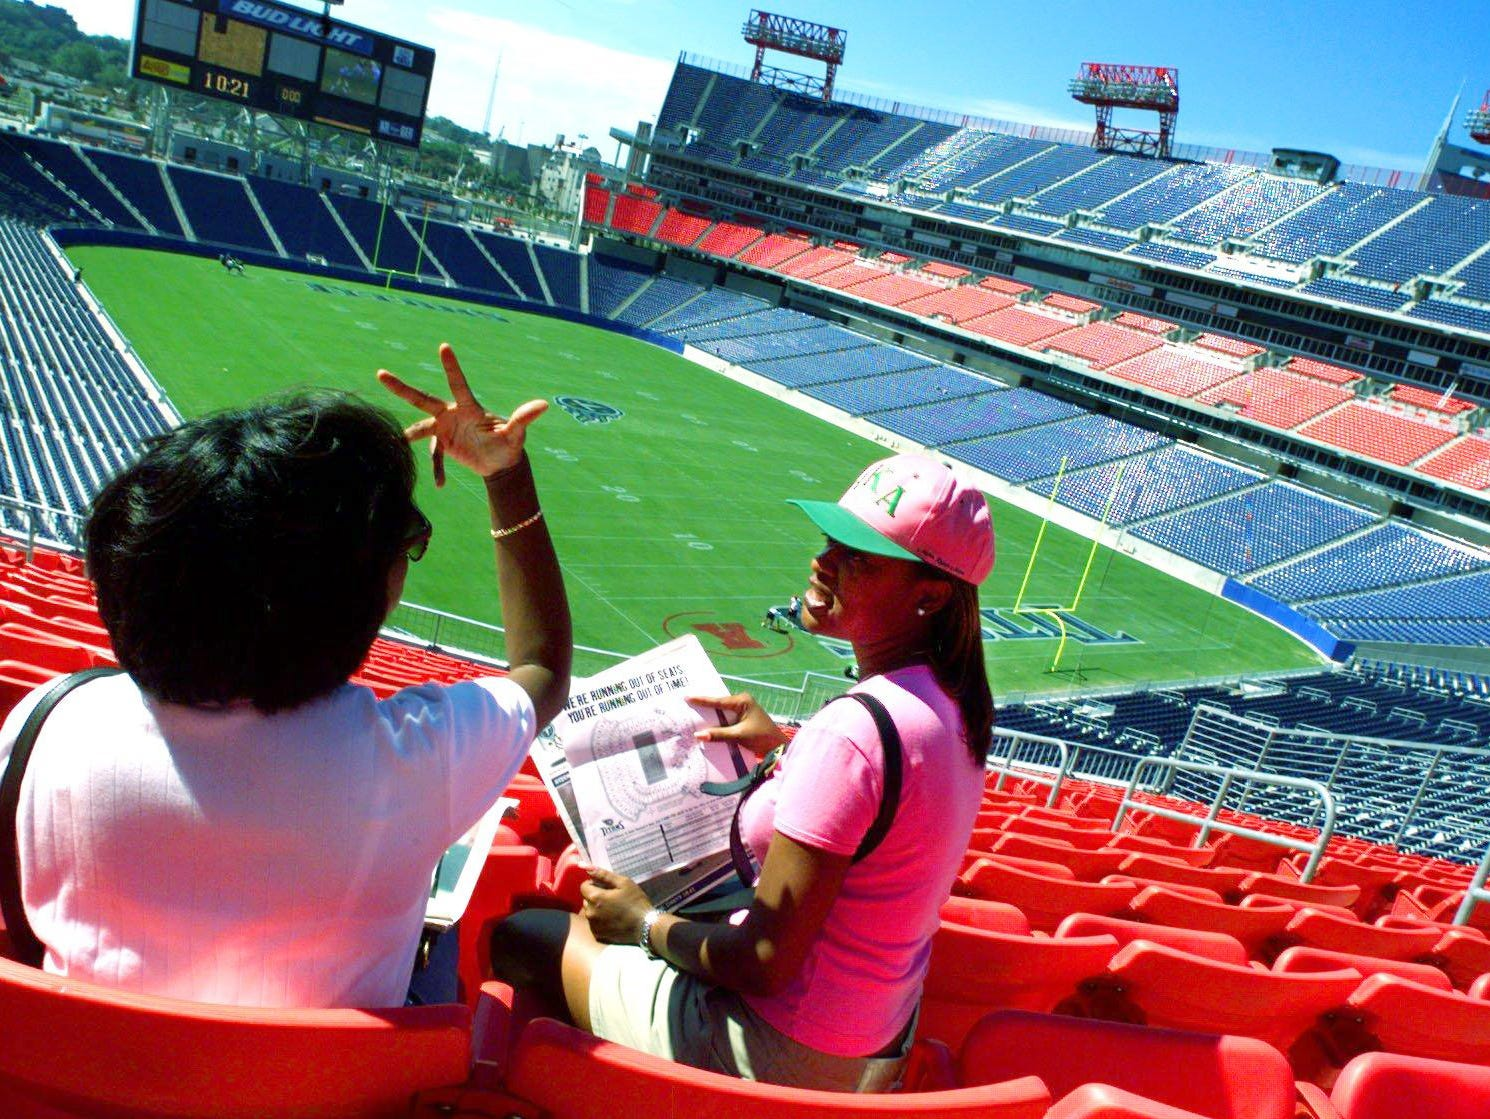 Angela Sumbry, left, and her friend LaShai Watson try out some seats in the club level at the Adelphia Coliseum Aug. 21, 1999. Private Seat Licenses are still available and the Titans are having a tag sale. A tag is put on the seats that are still up for grabs and shoppers get to find the seat they want, try it out, and then purchase it on the spot.